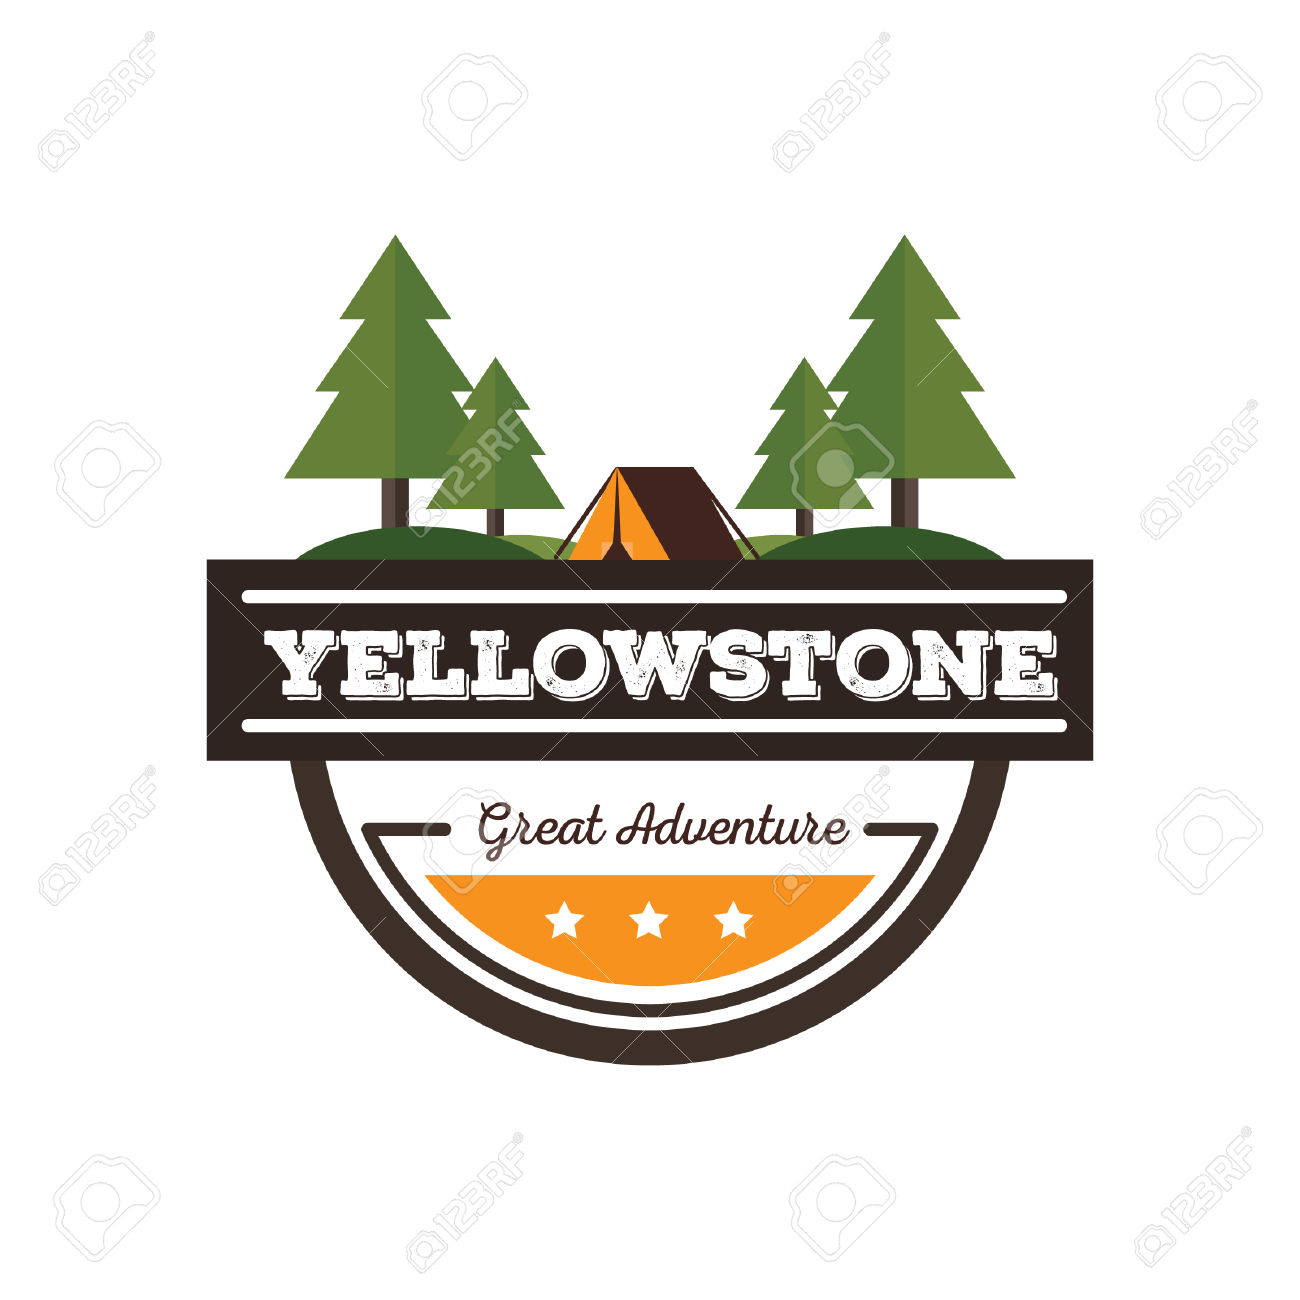 Yellowstone Label Royalty Free Cliparts, Vectors, And Stock.